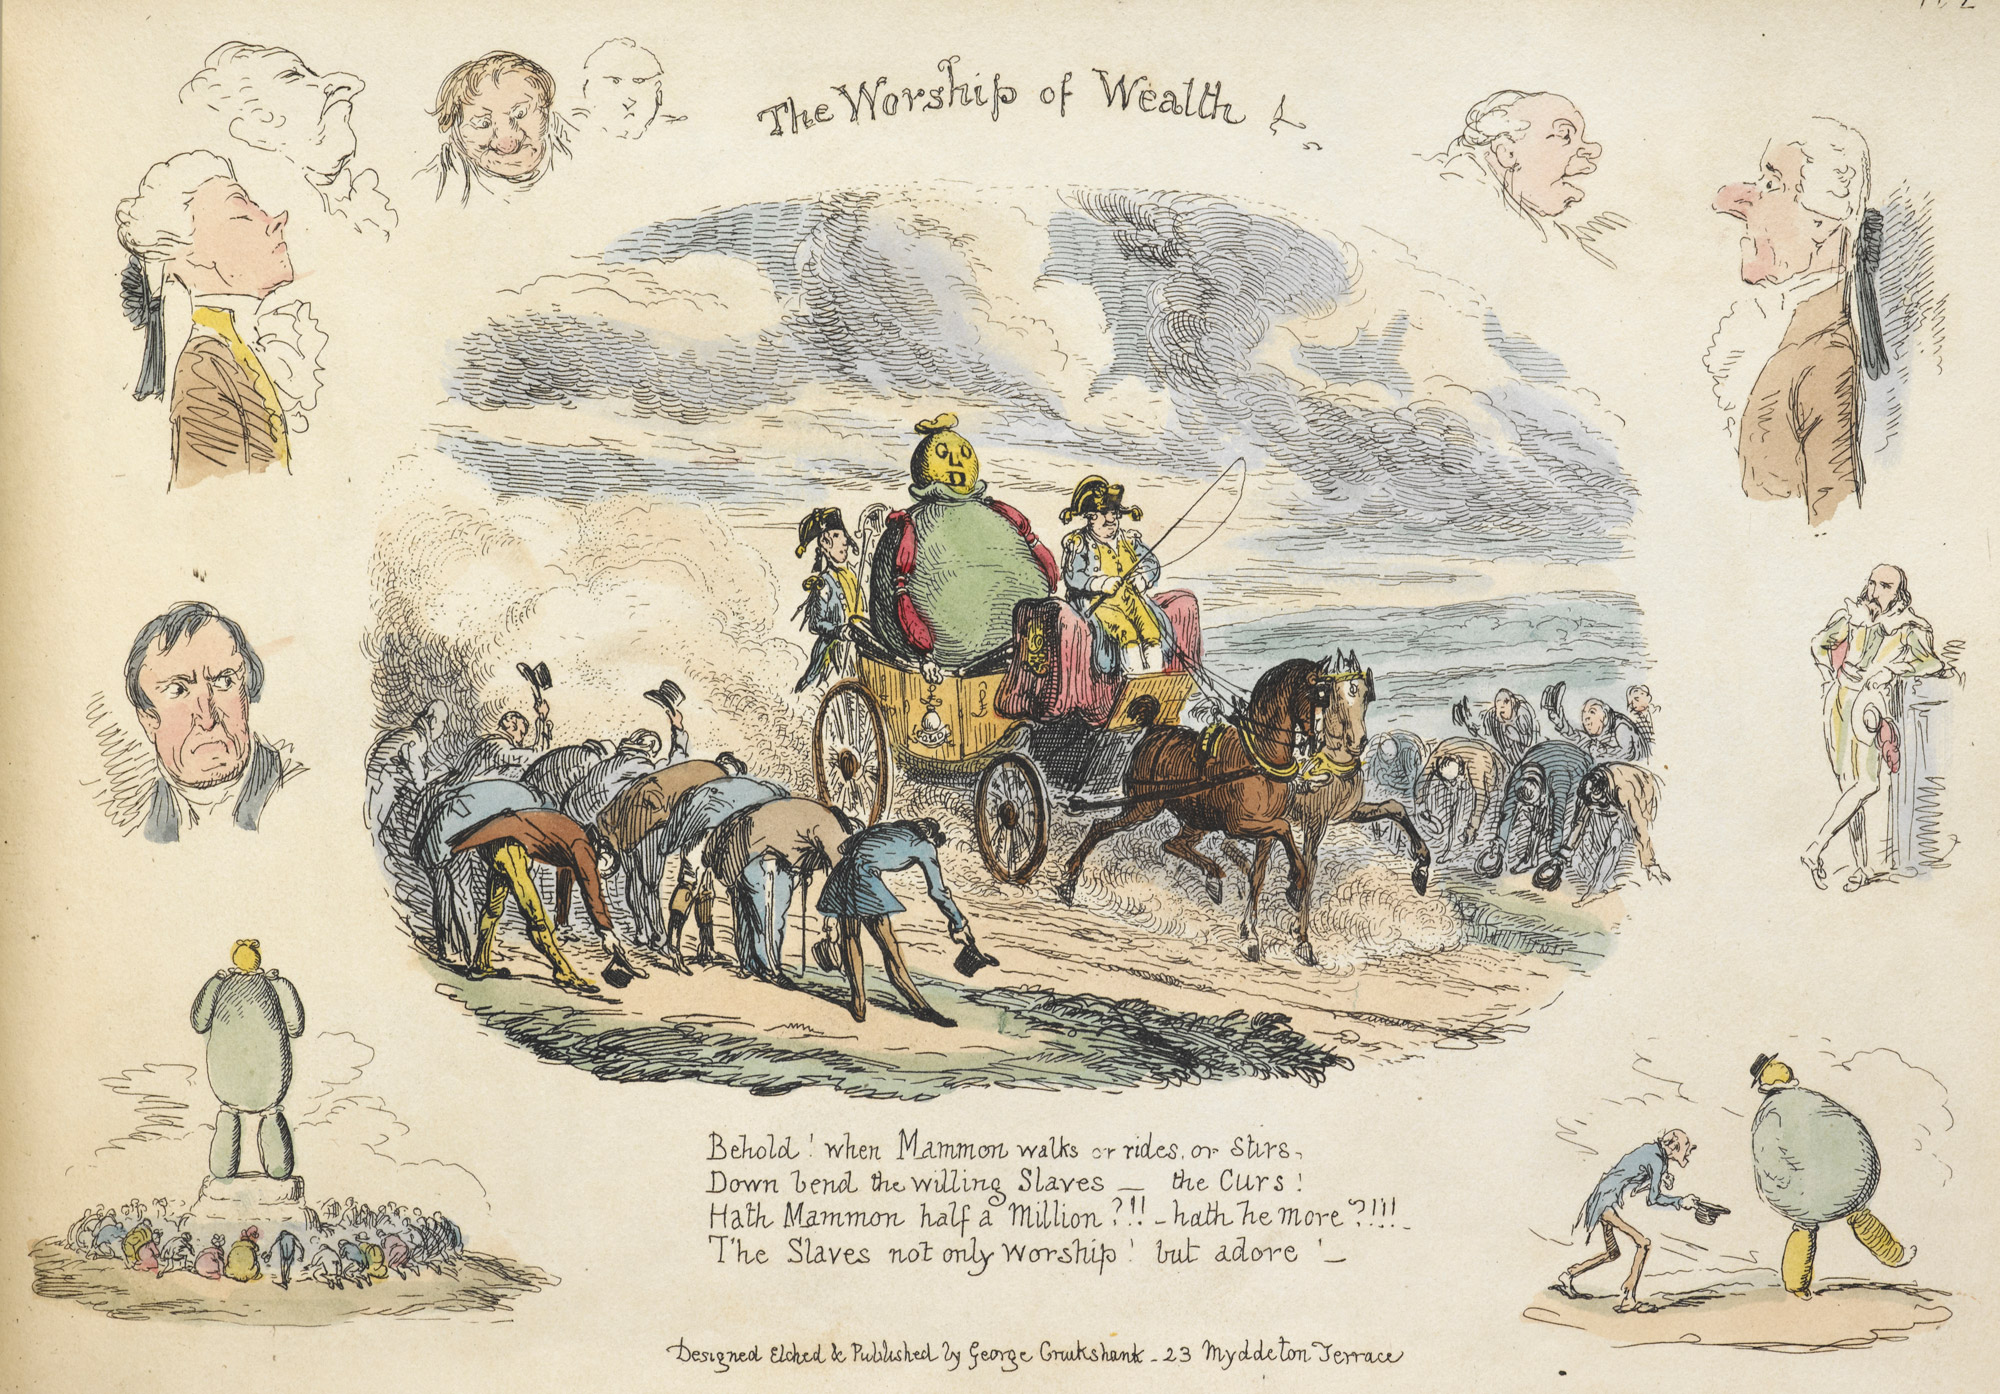 The Worship of Wealth, from My Sketch Book by George Cruikshank